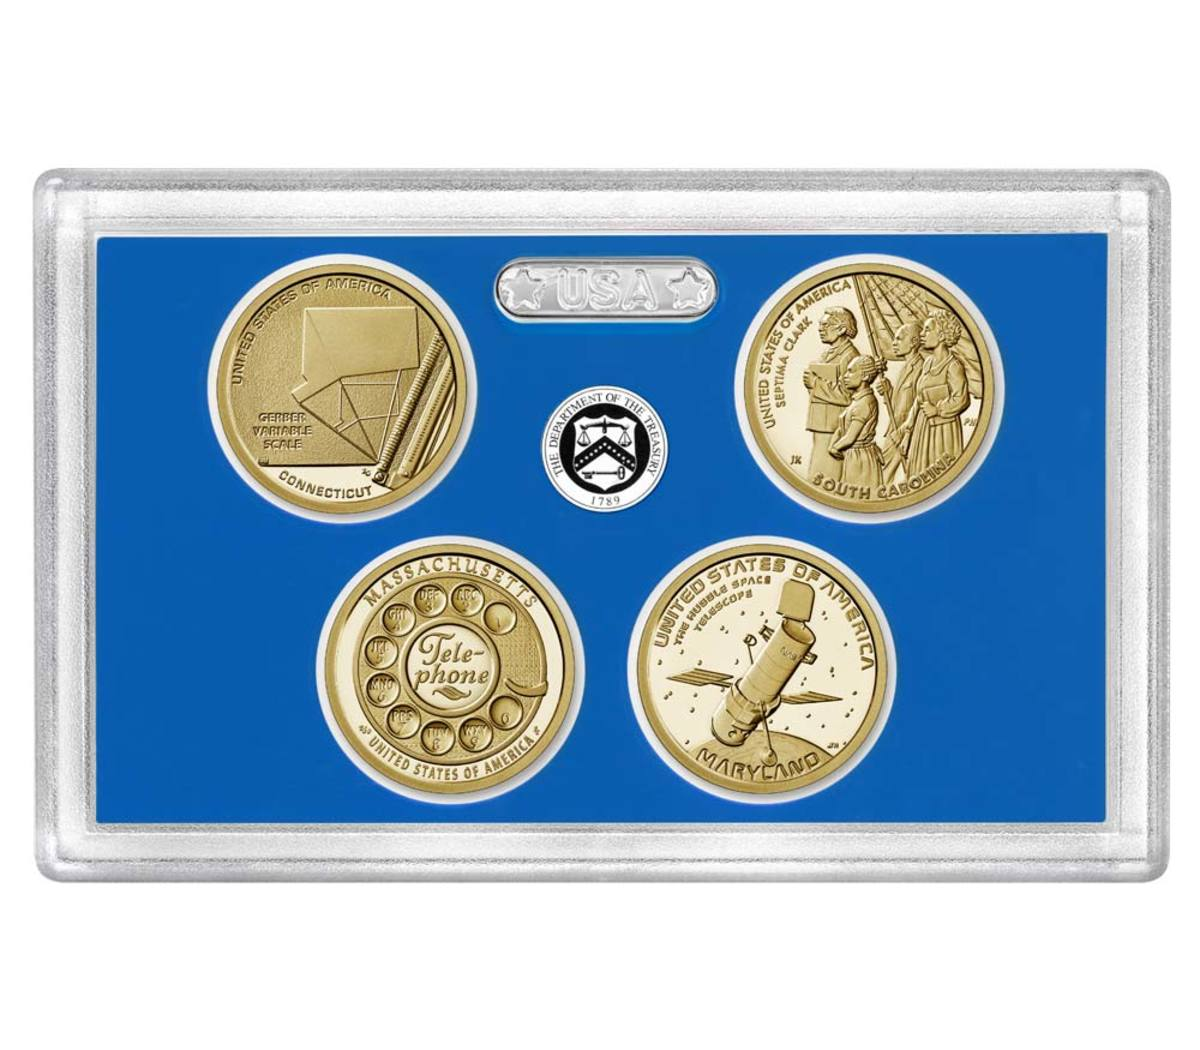 The American Innovation Proof set goes on sale Oct. 8 at noon EST.